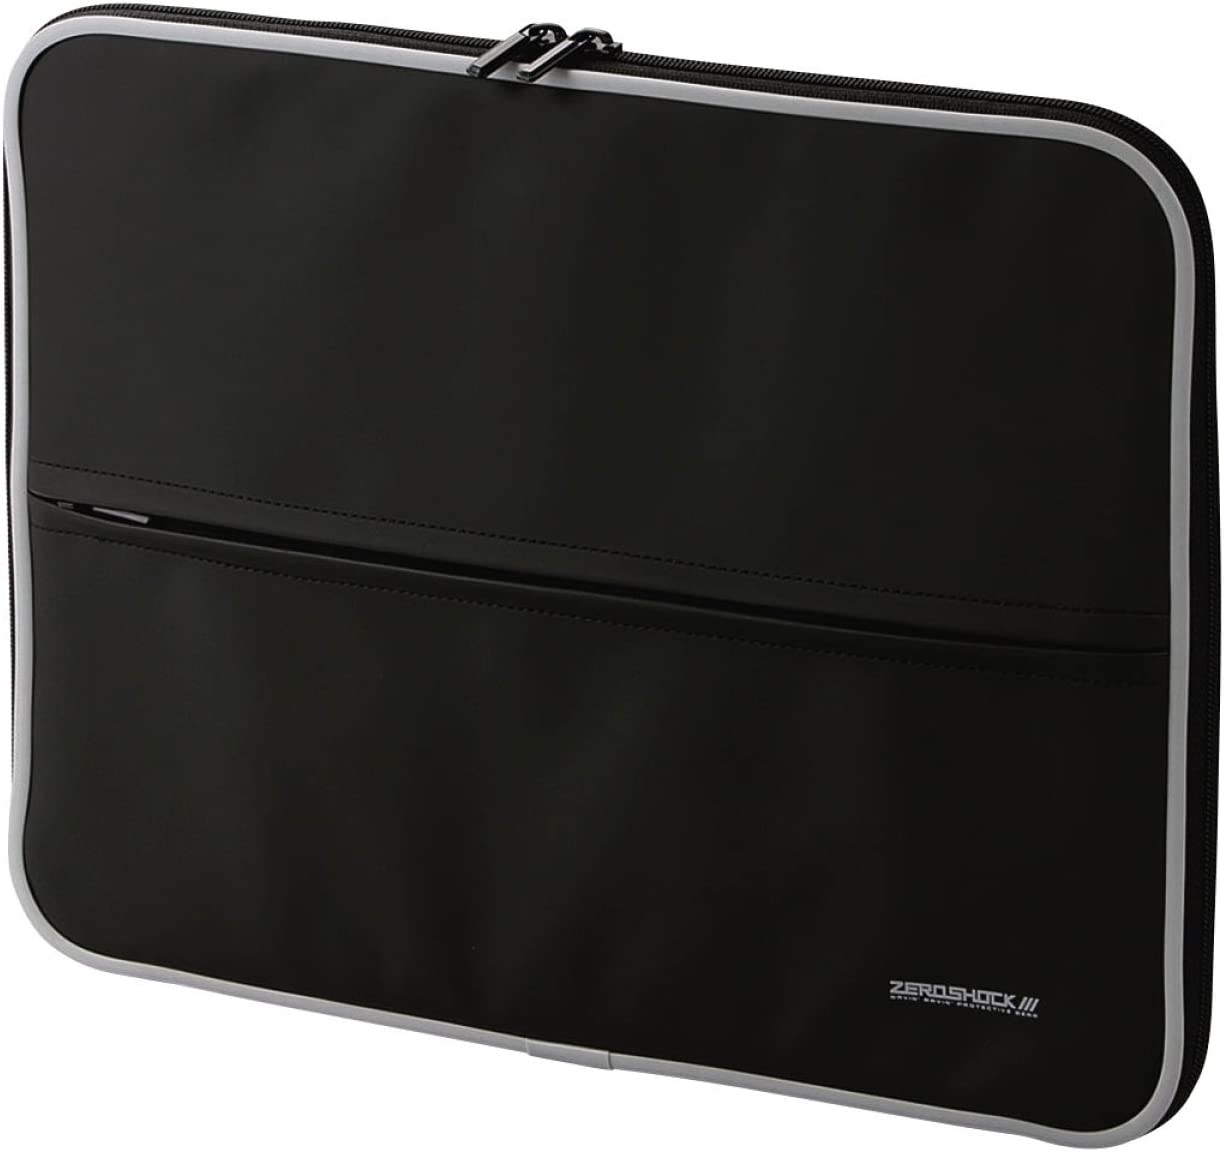 Zeroshock III 13-inch Widescreen Notebook Case